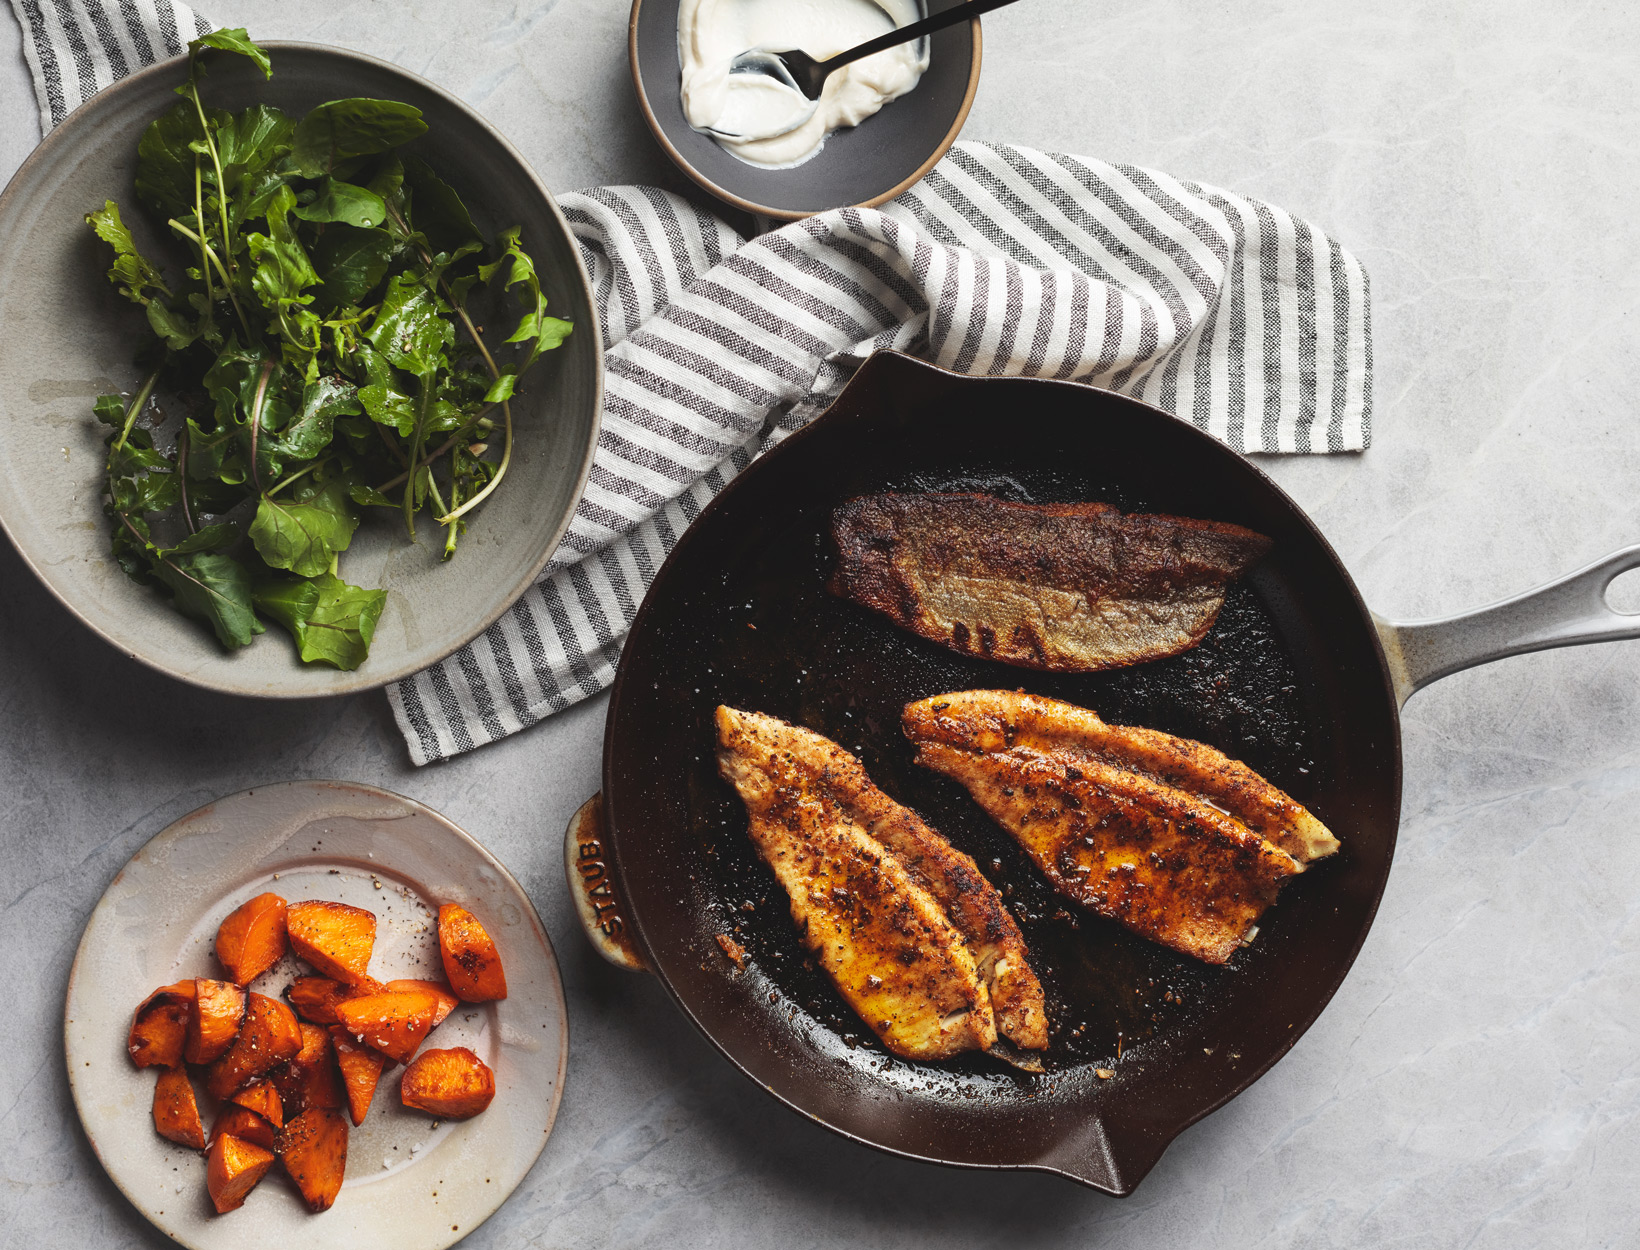 Blackened Trout with Roasted Sweet Potatoes and Arugula Salad